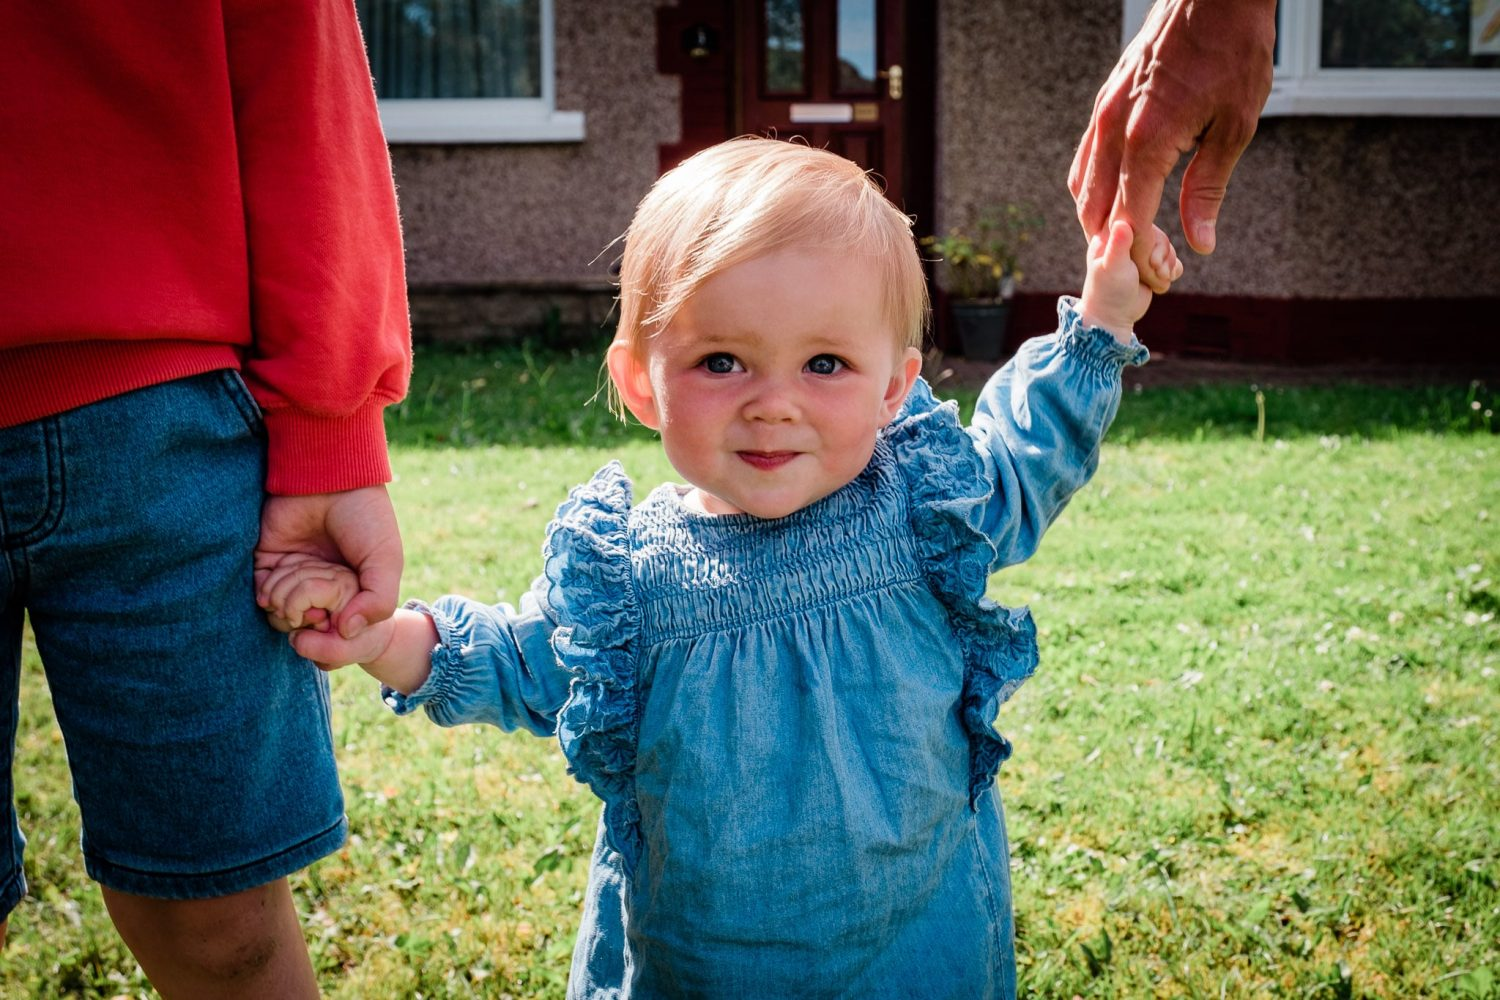 Sweet little girl walking hand in hand with brother and dad